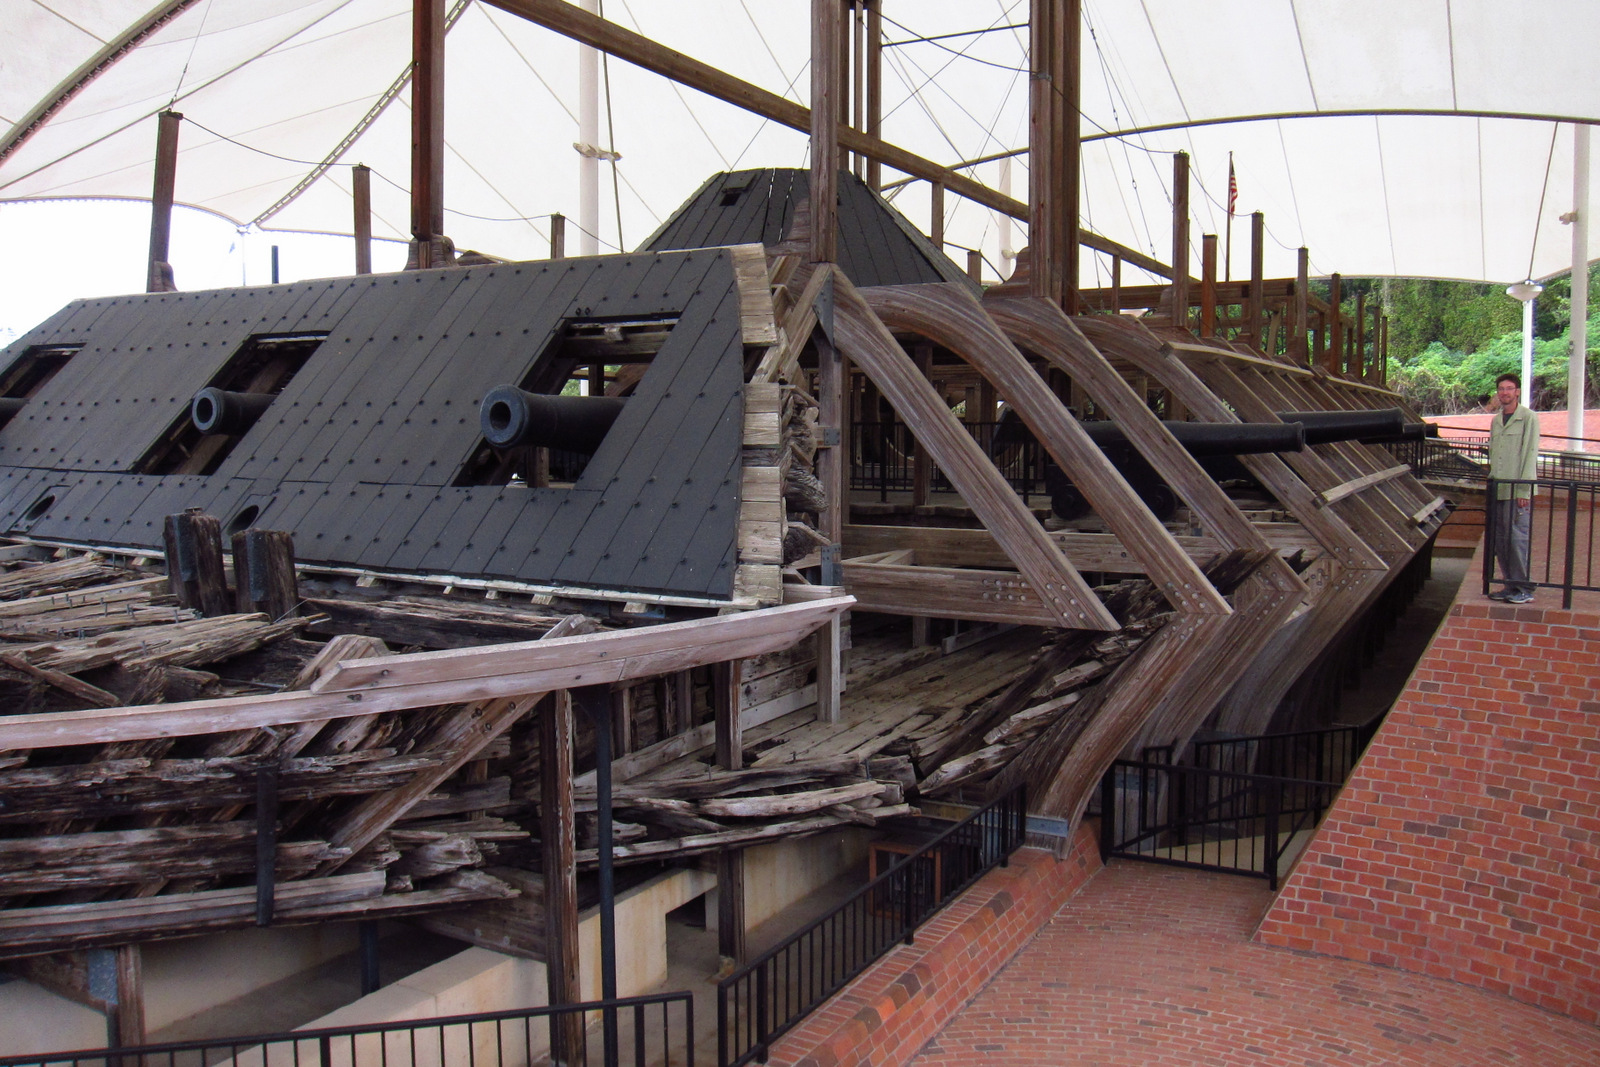 Scott with USS Cairo